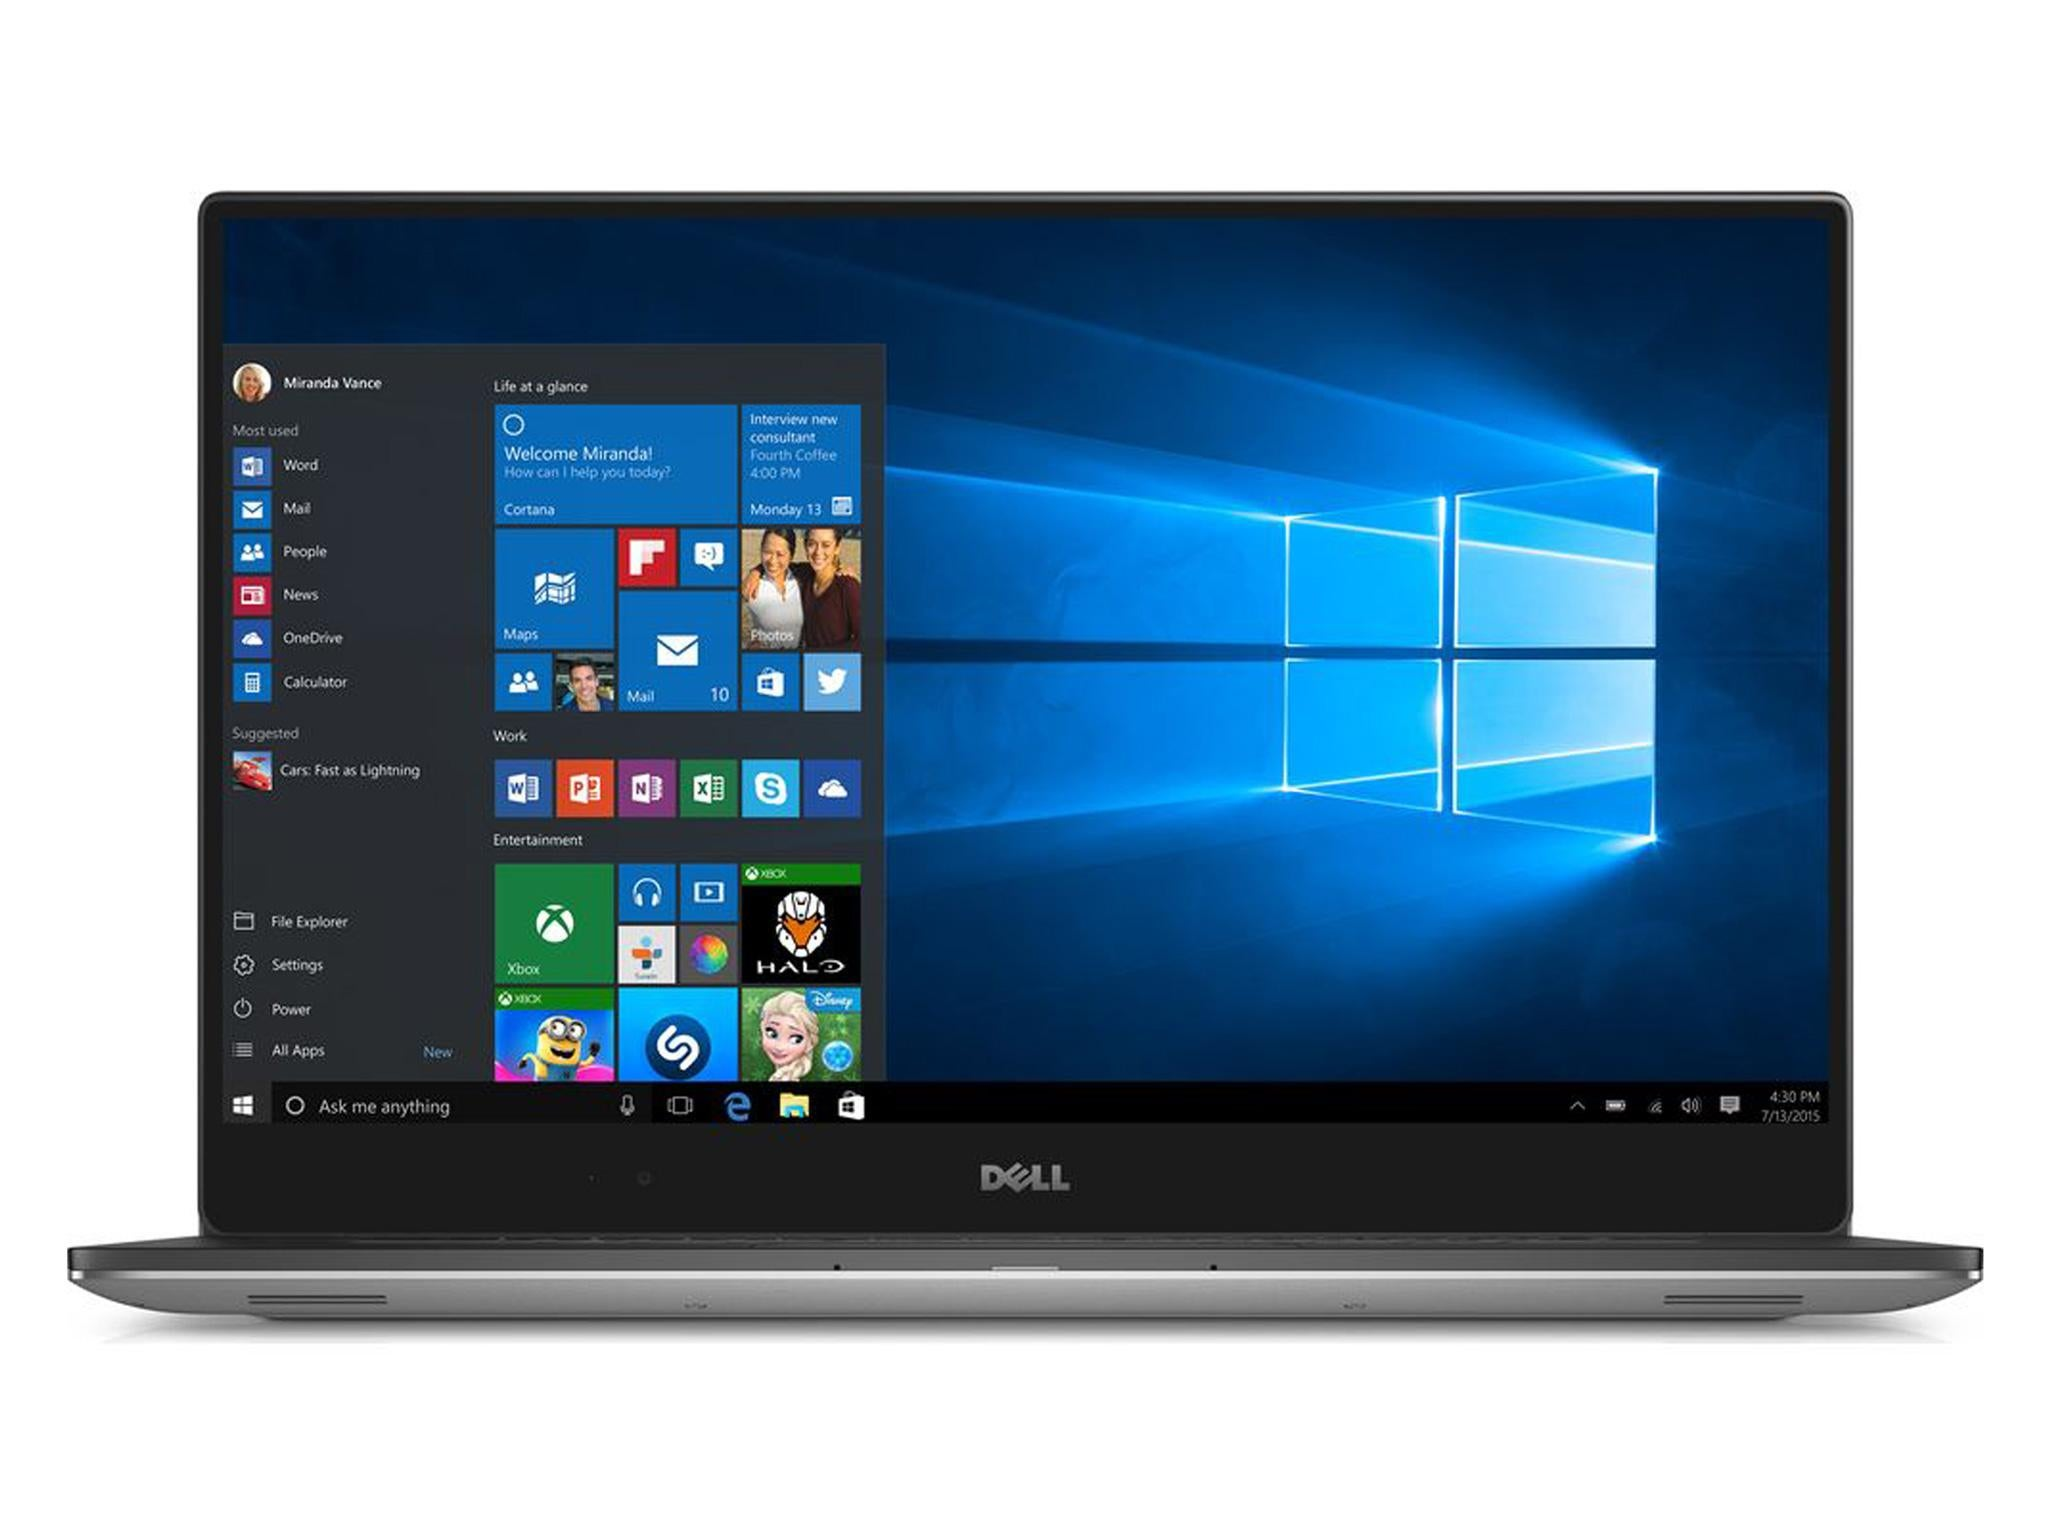 The most powerful laptops in the world at the moment